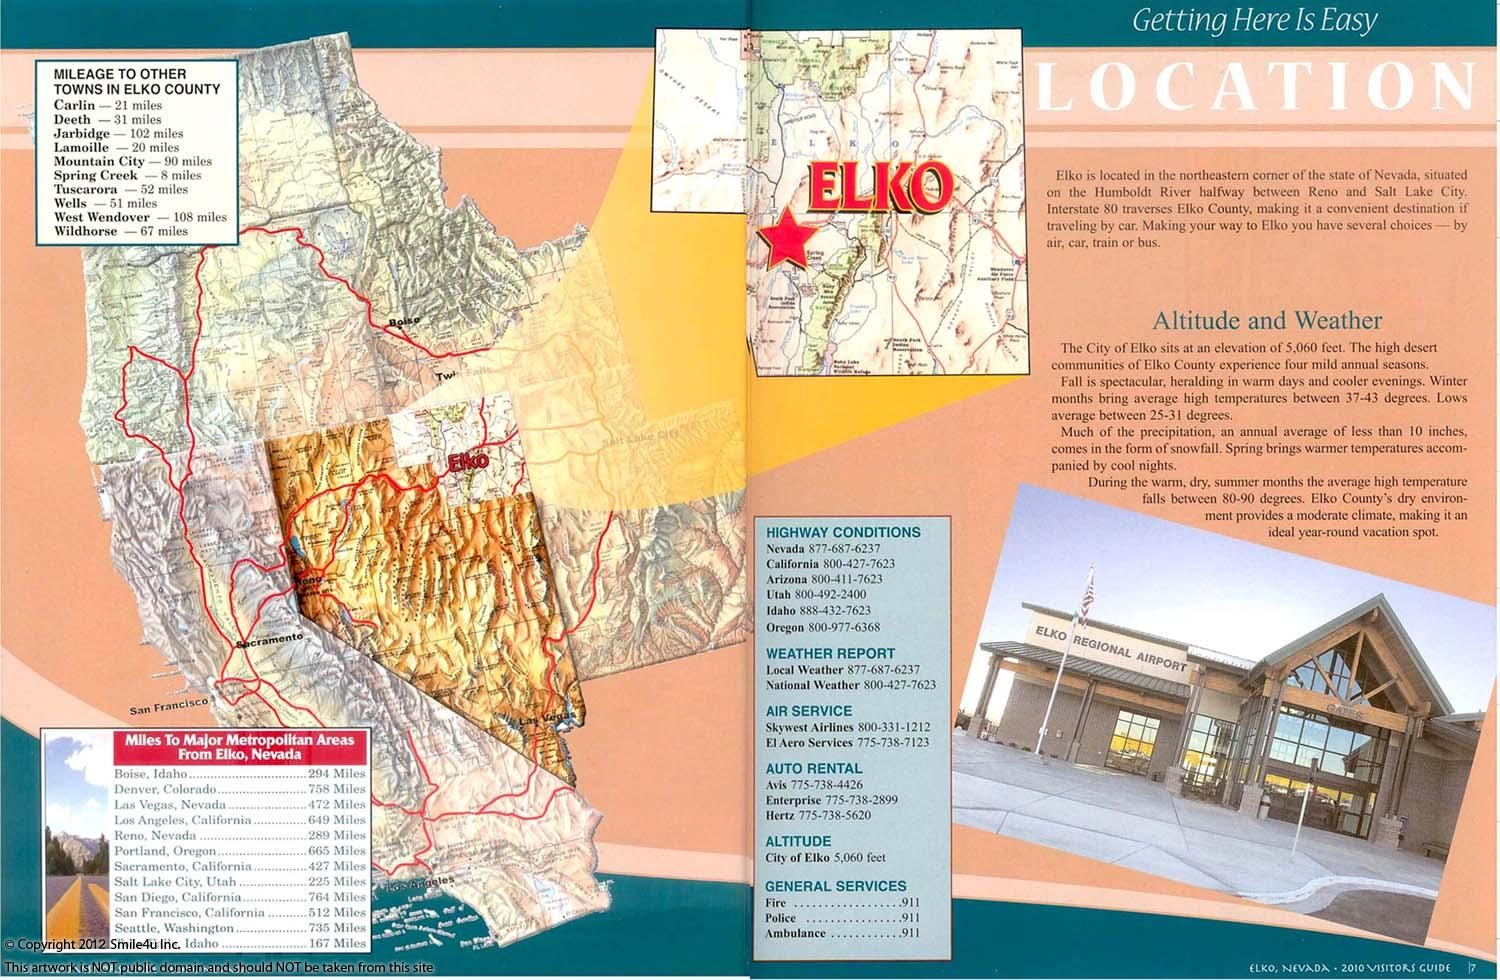 606634_watermarked_Elko Area Map and Information.jpg